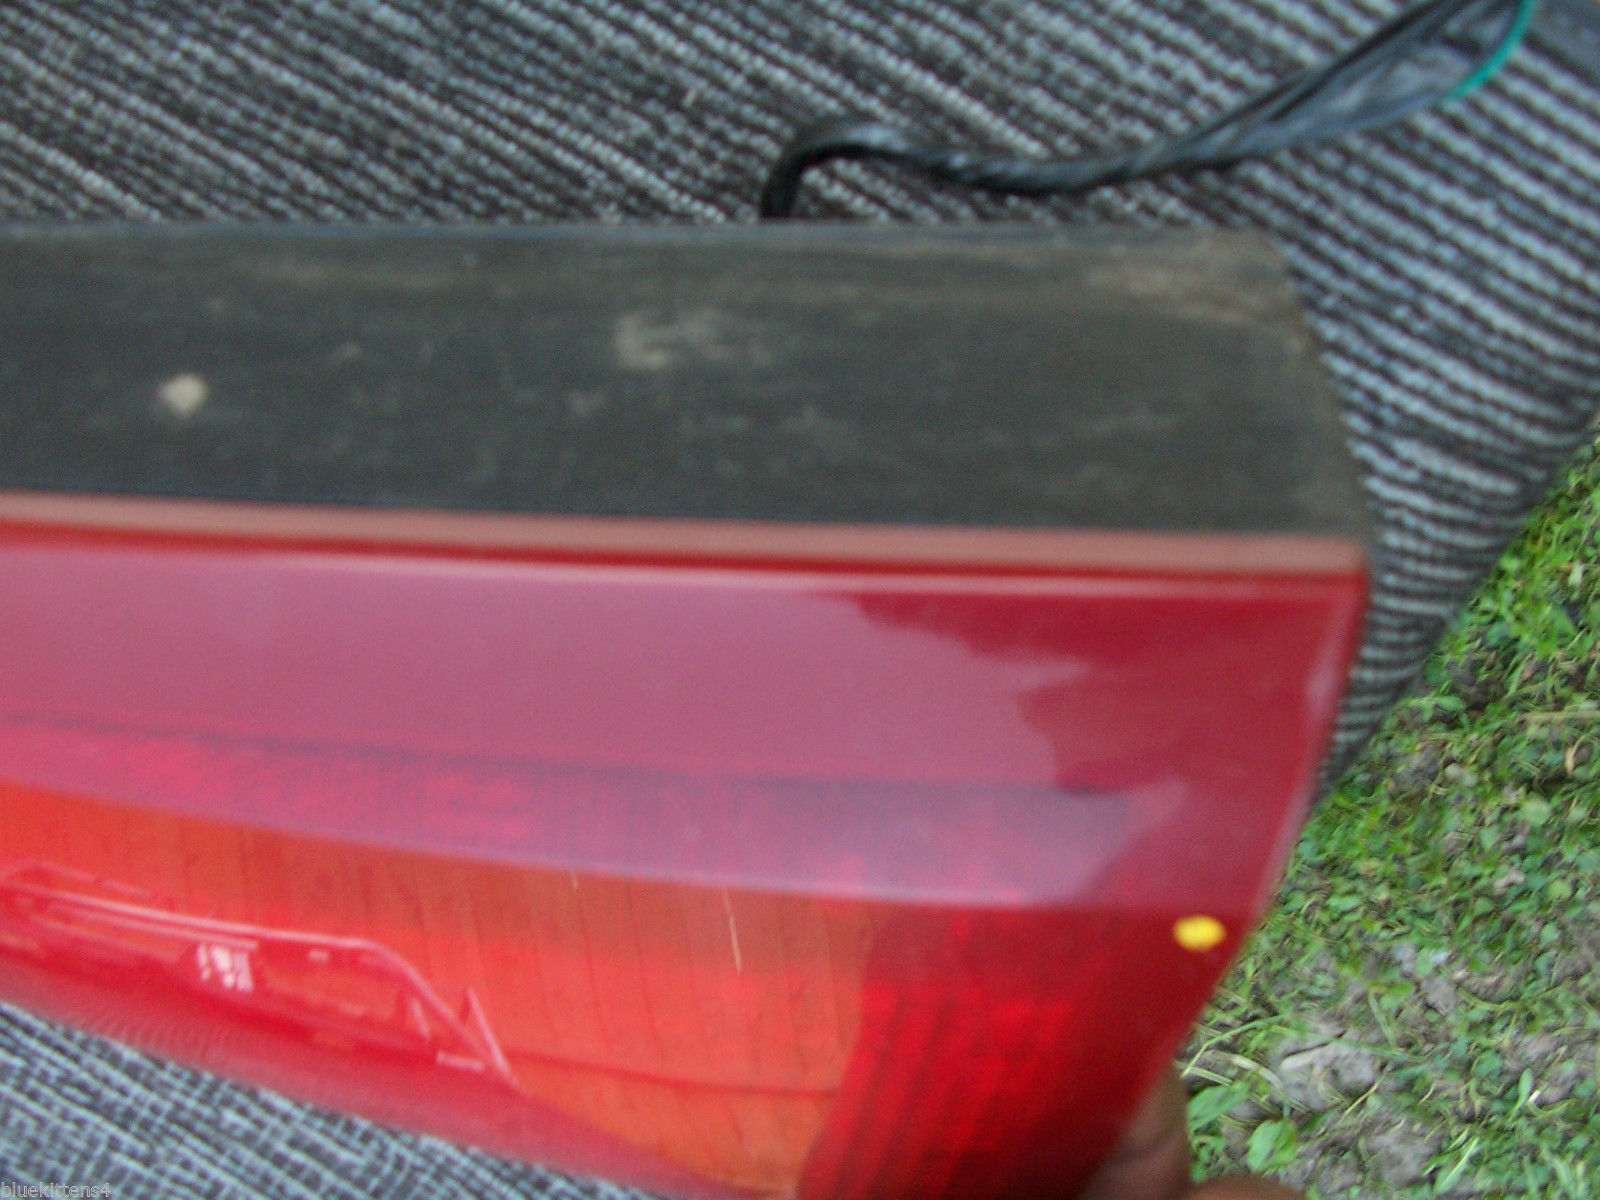 2000 2005 DHS DTS DEVILLE LEFT TAILLIGHT OEM USED CADILLAC GM PART NUMBER 278217 image 2